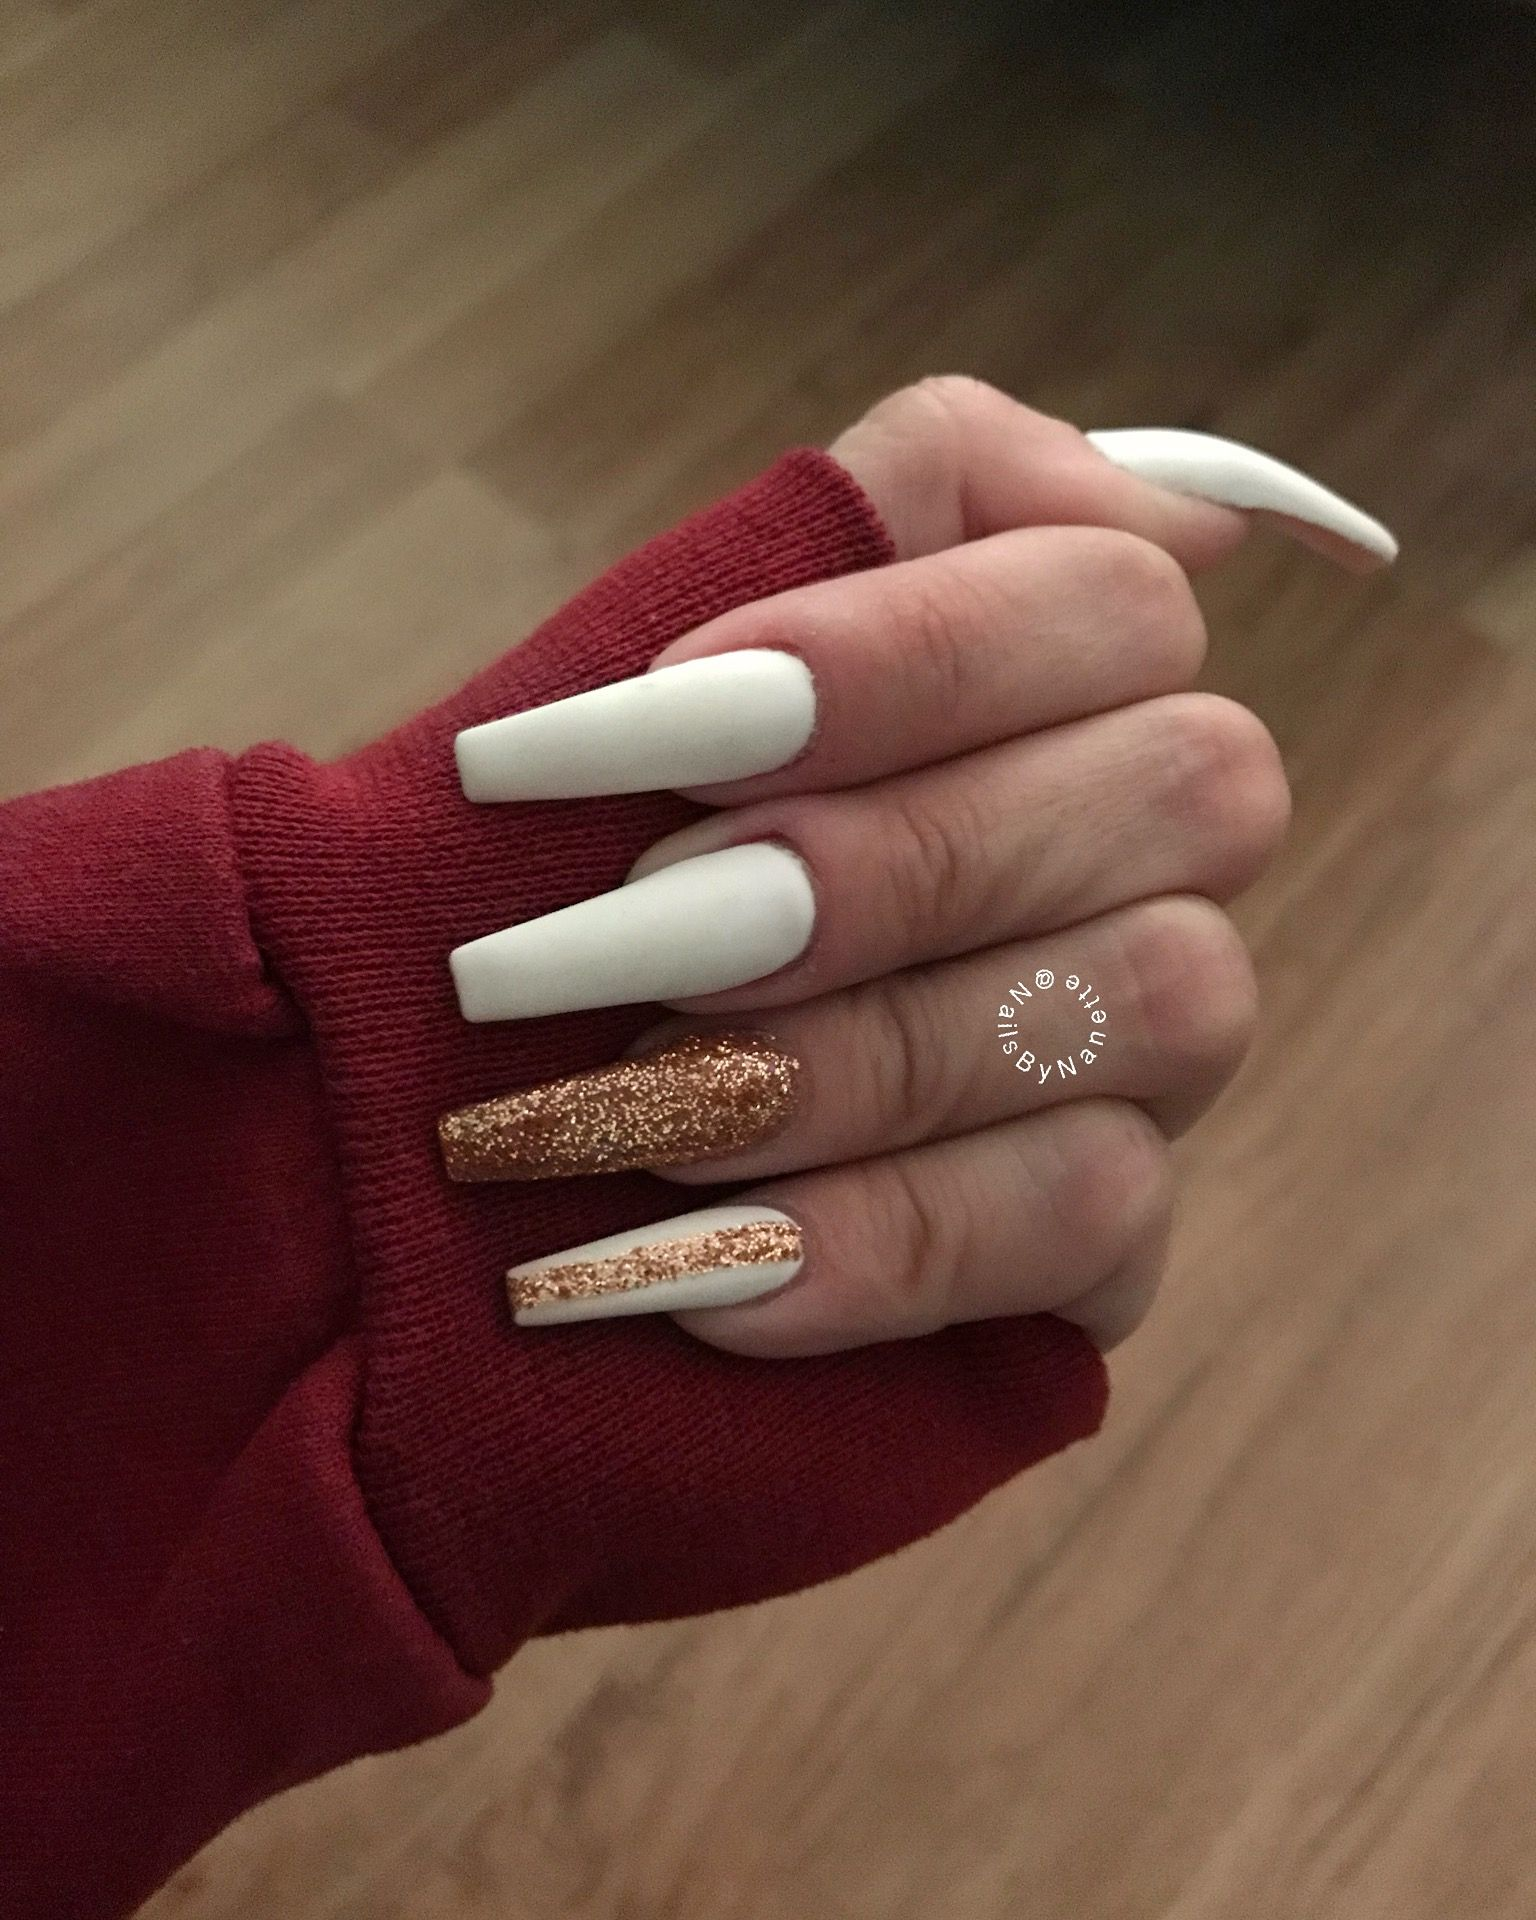 Matte Nails White Nails Gold Nails White And Gold Nails Gold Acrylic Nails Gold Nails Gold Nails Prom